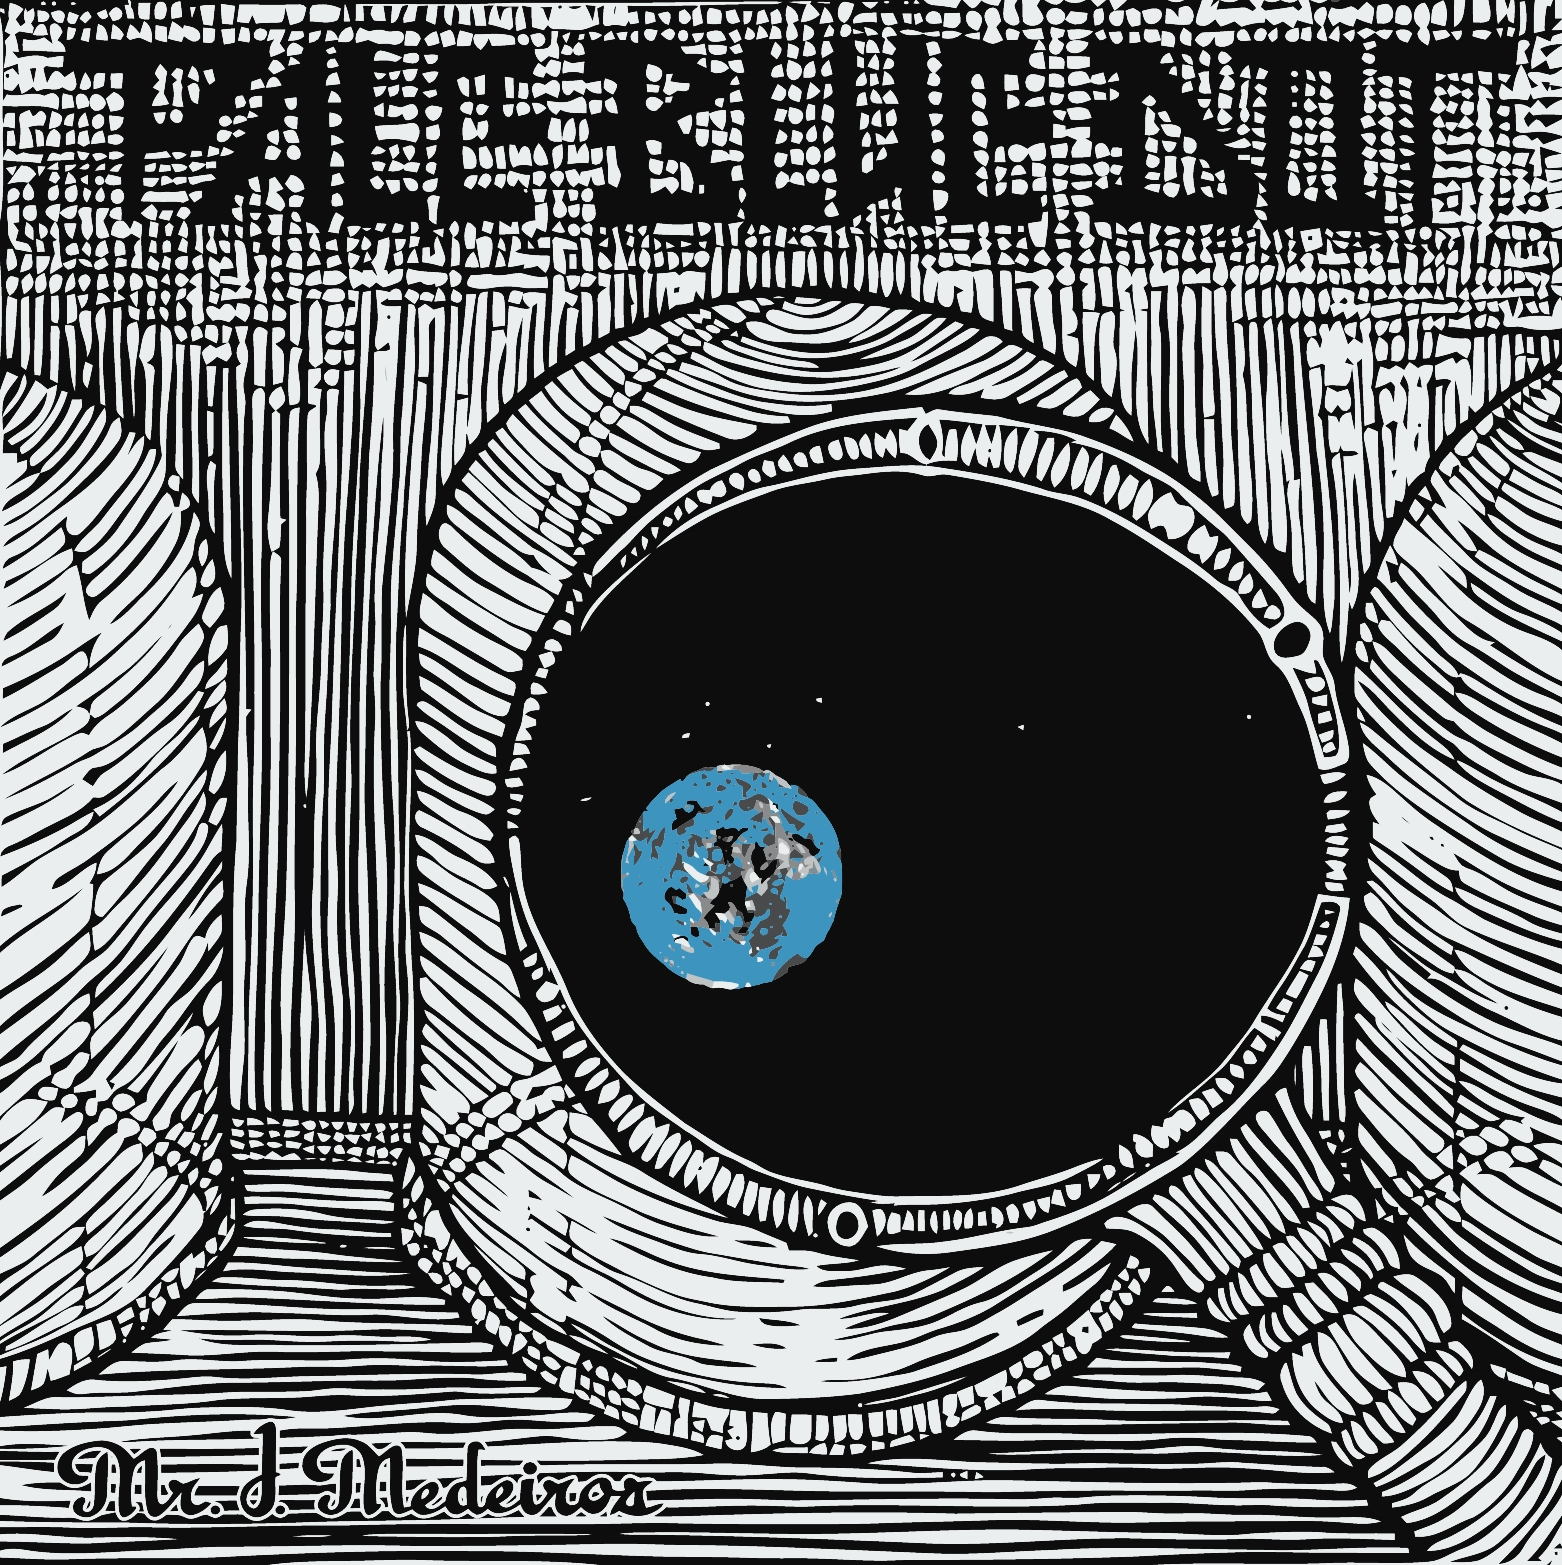 Free Download: Mr. J Medeiros – Pale Blue Dot EP (2012)